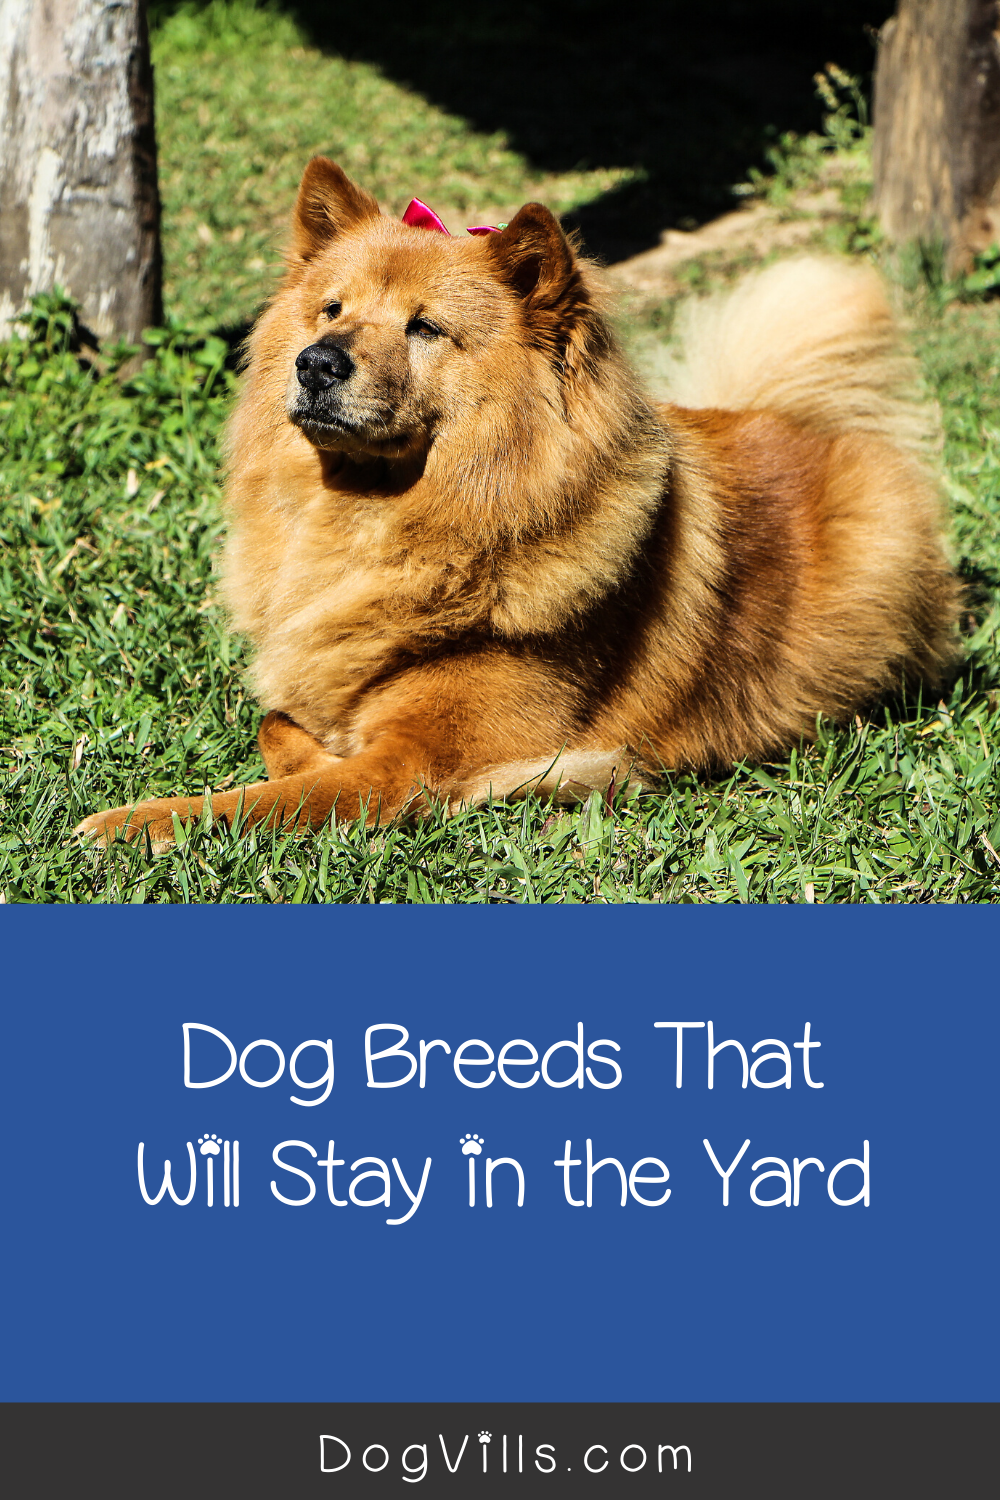 8 Dog Breeds That Will Stay in the Yard - DogVills in 2020 | Dog breeds,  Dogs, Best small dogs